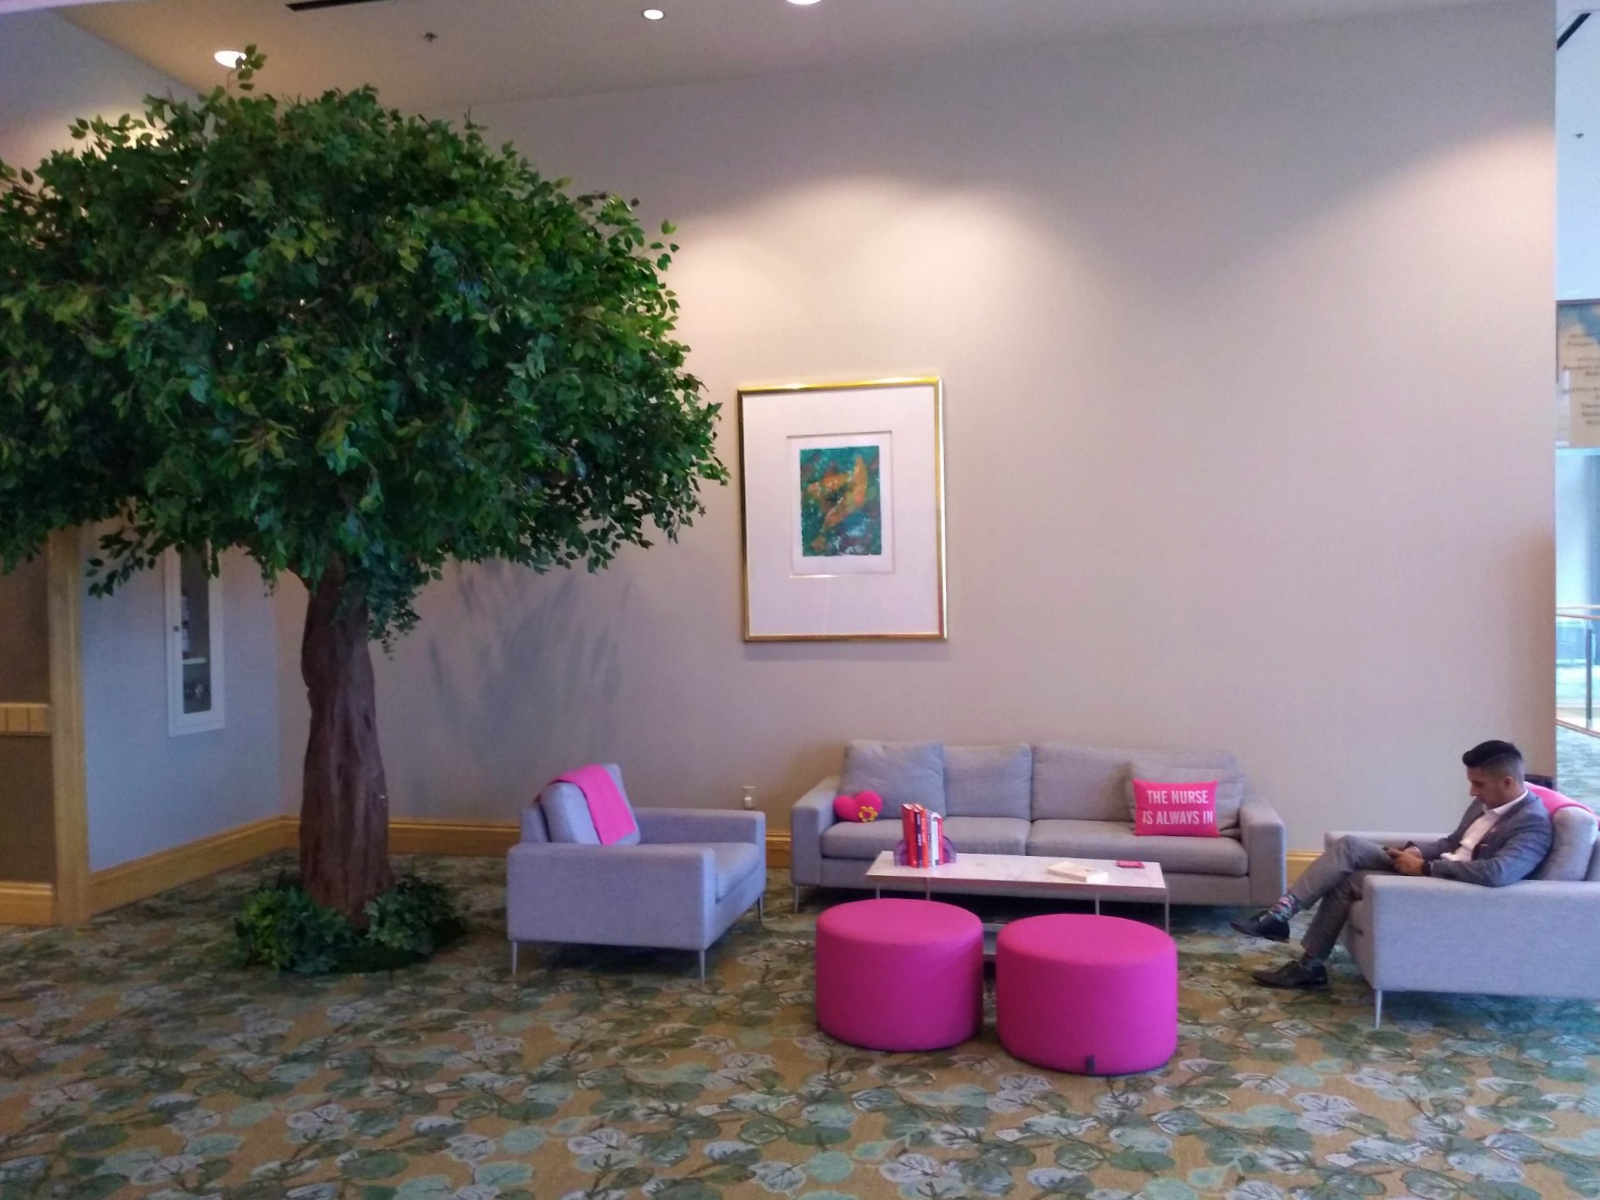 Canopy Ficus tree in grey and pink accented lounge for branded event decor